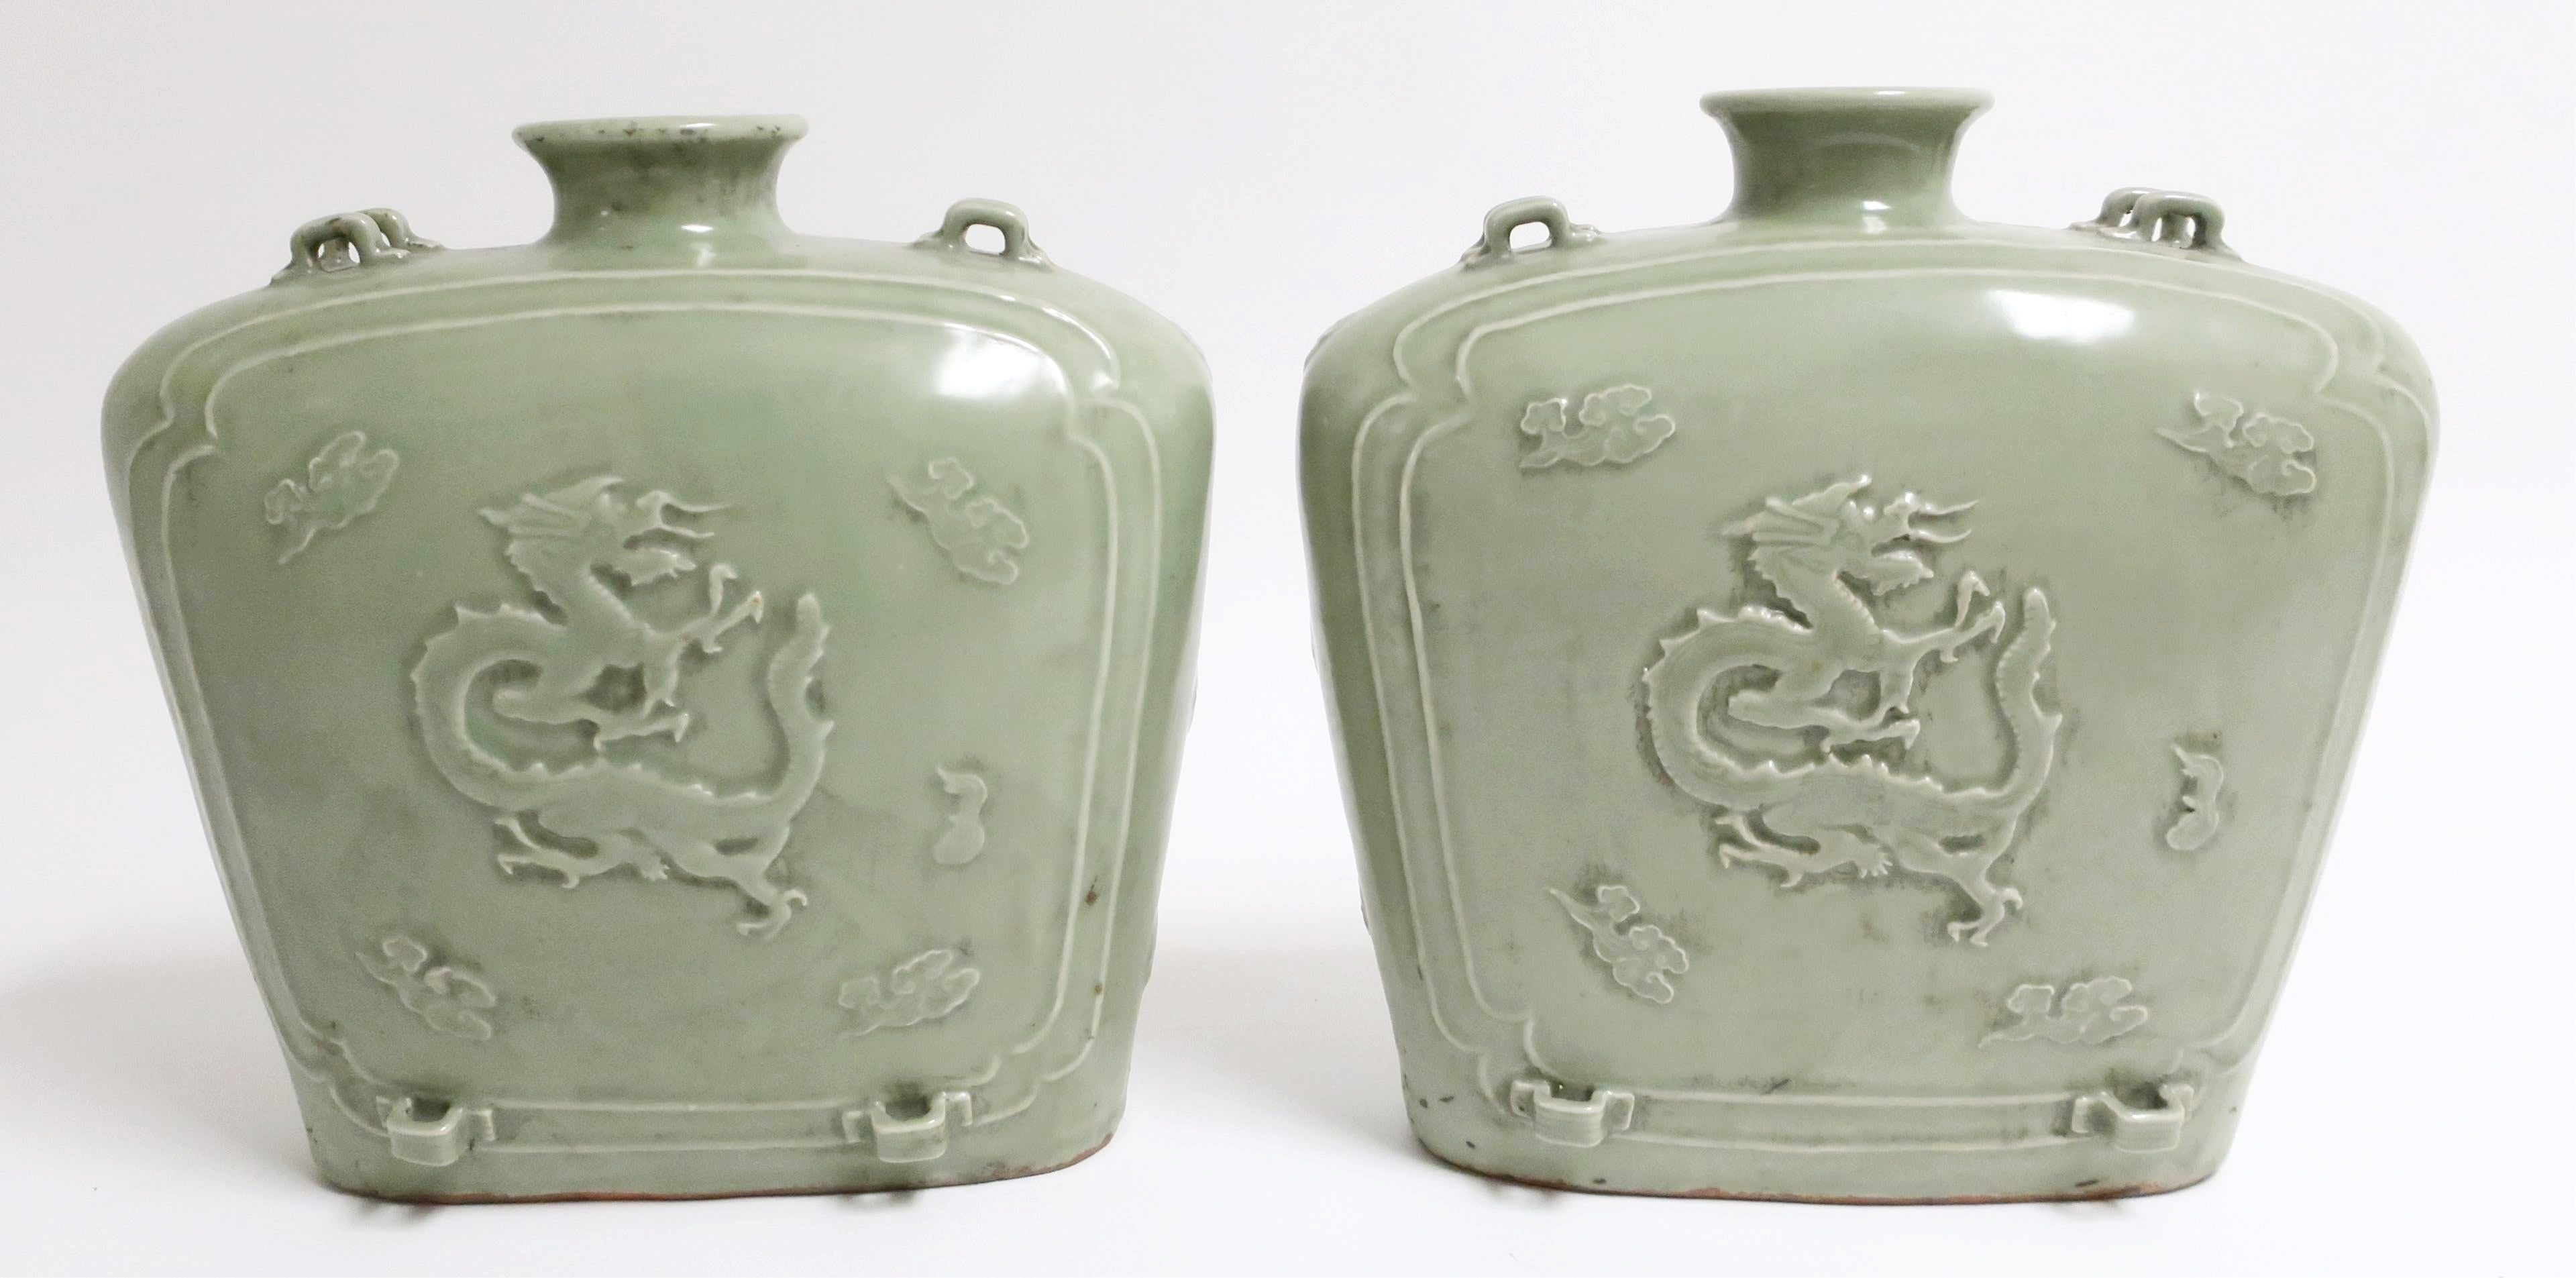 Pair Of Large Celadon Bianhi Shapes Vases. Sold For $9,100